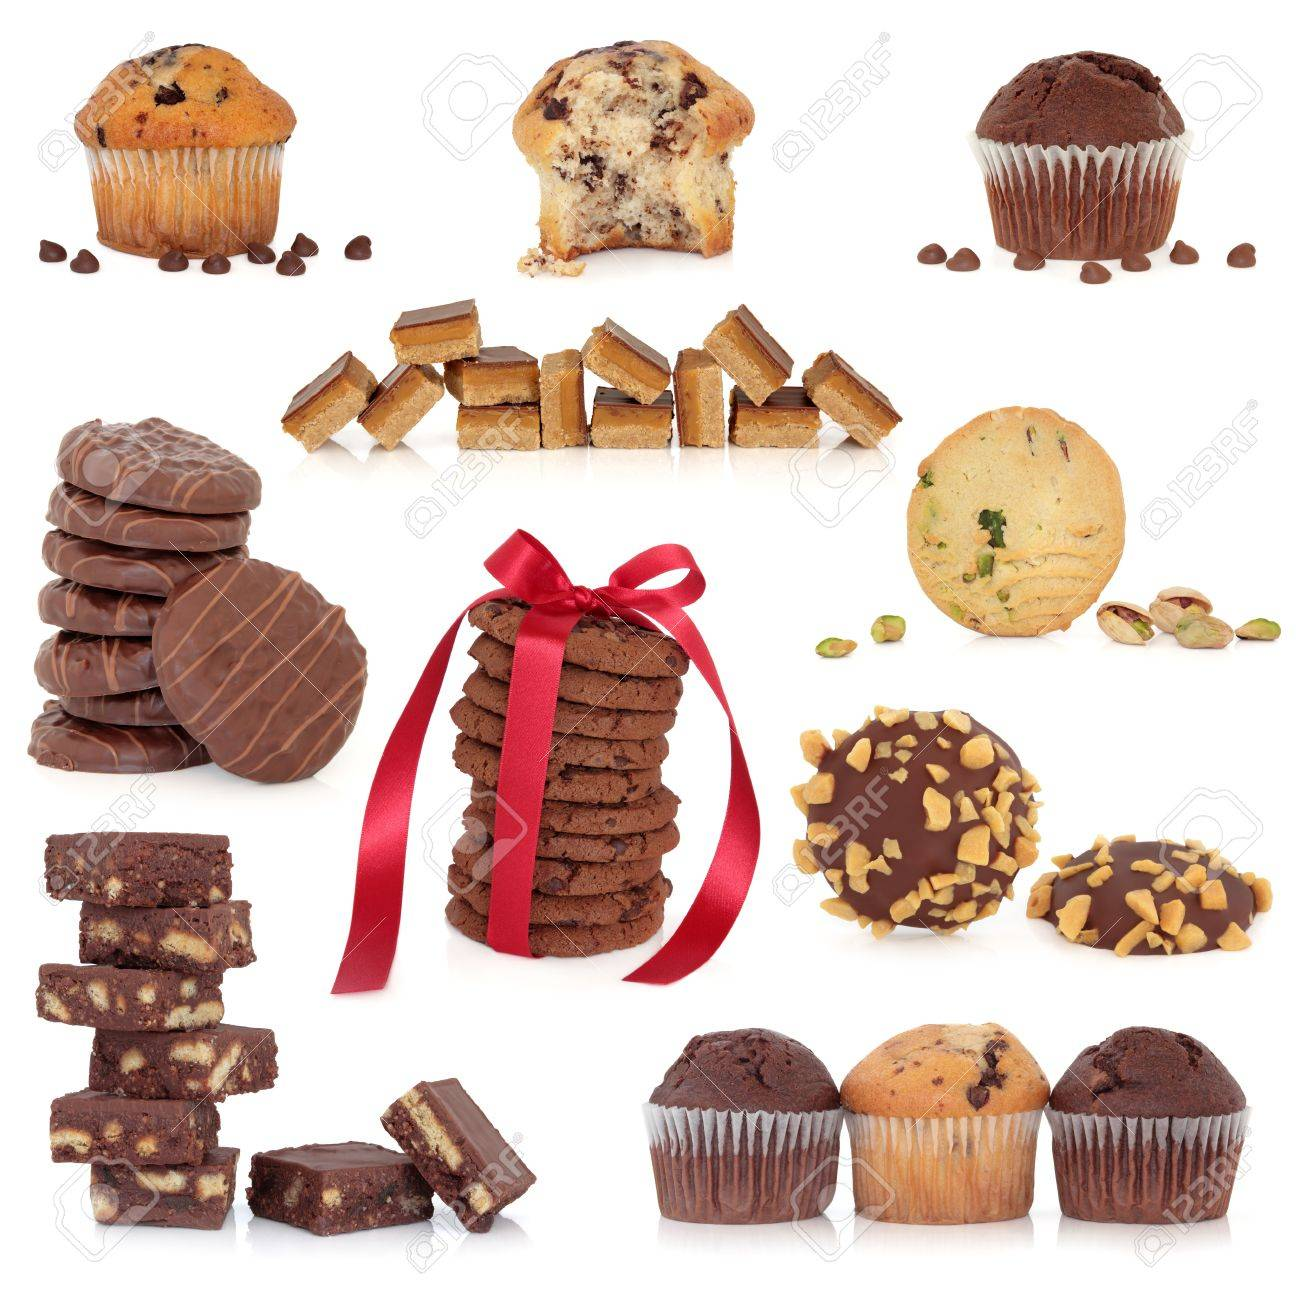 Large collection of chocolate cookies, biscuits, candy and muffin cakes isolated over white background Stock Photo - 13373293